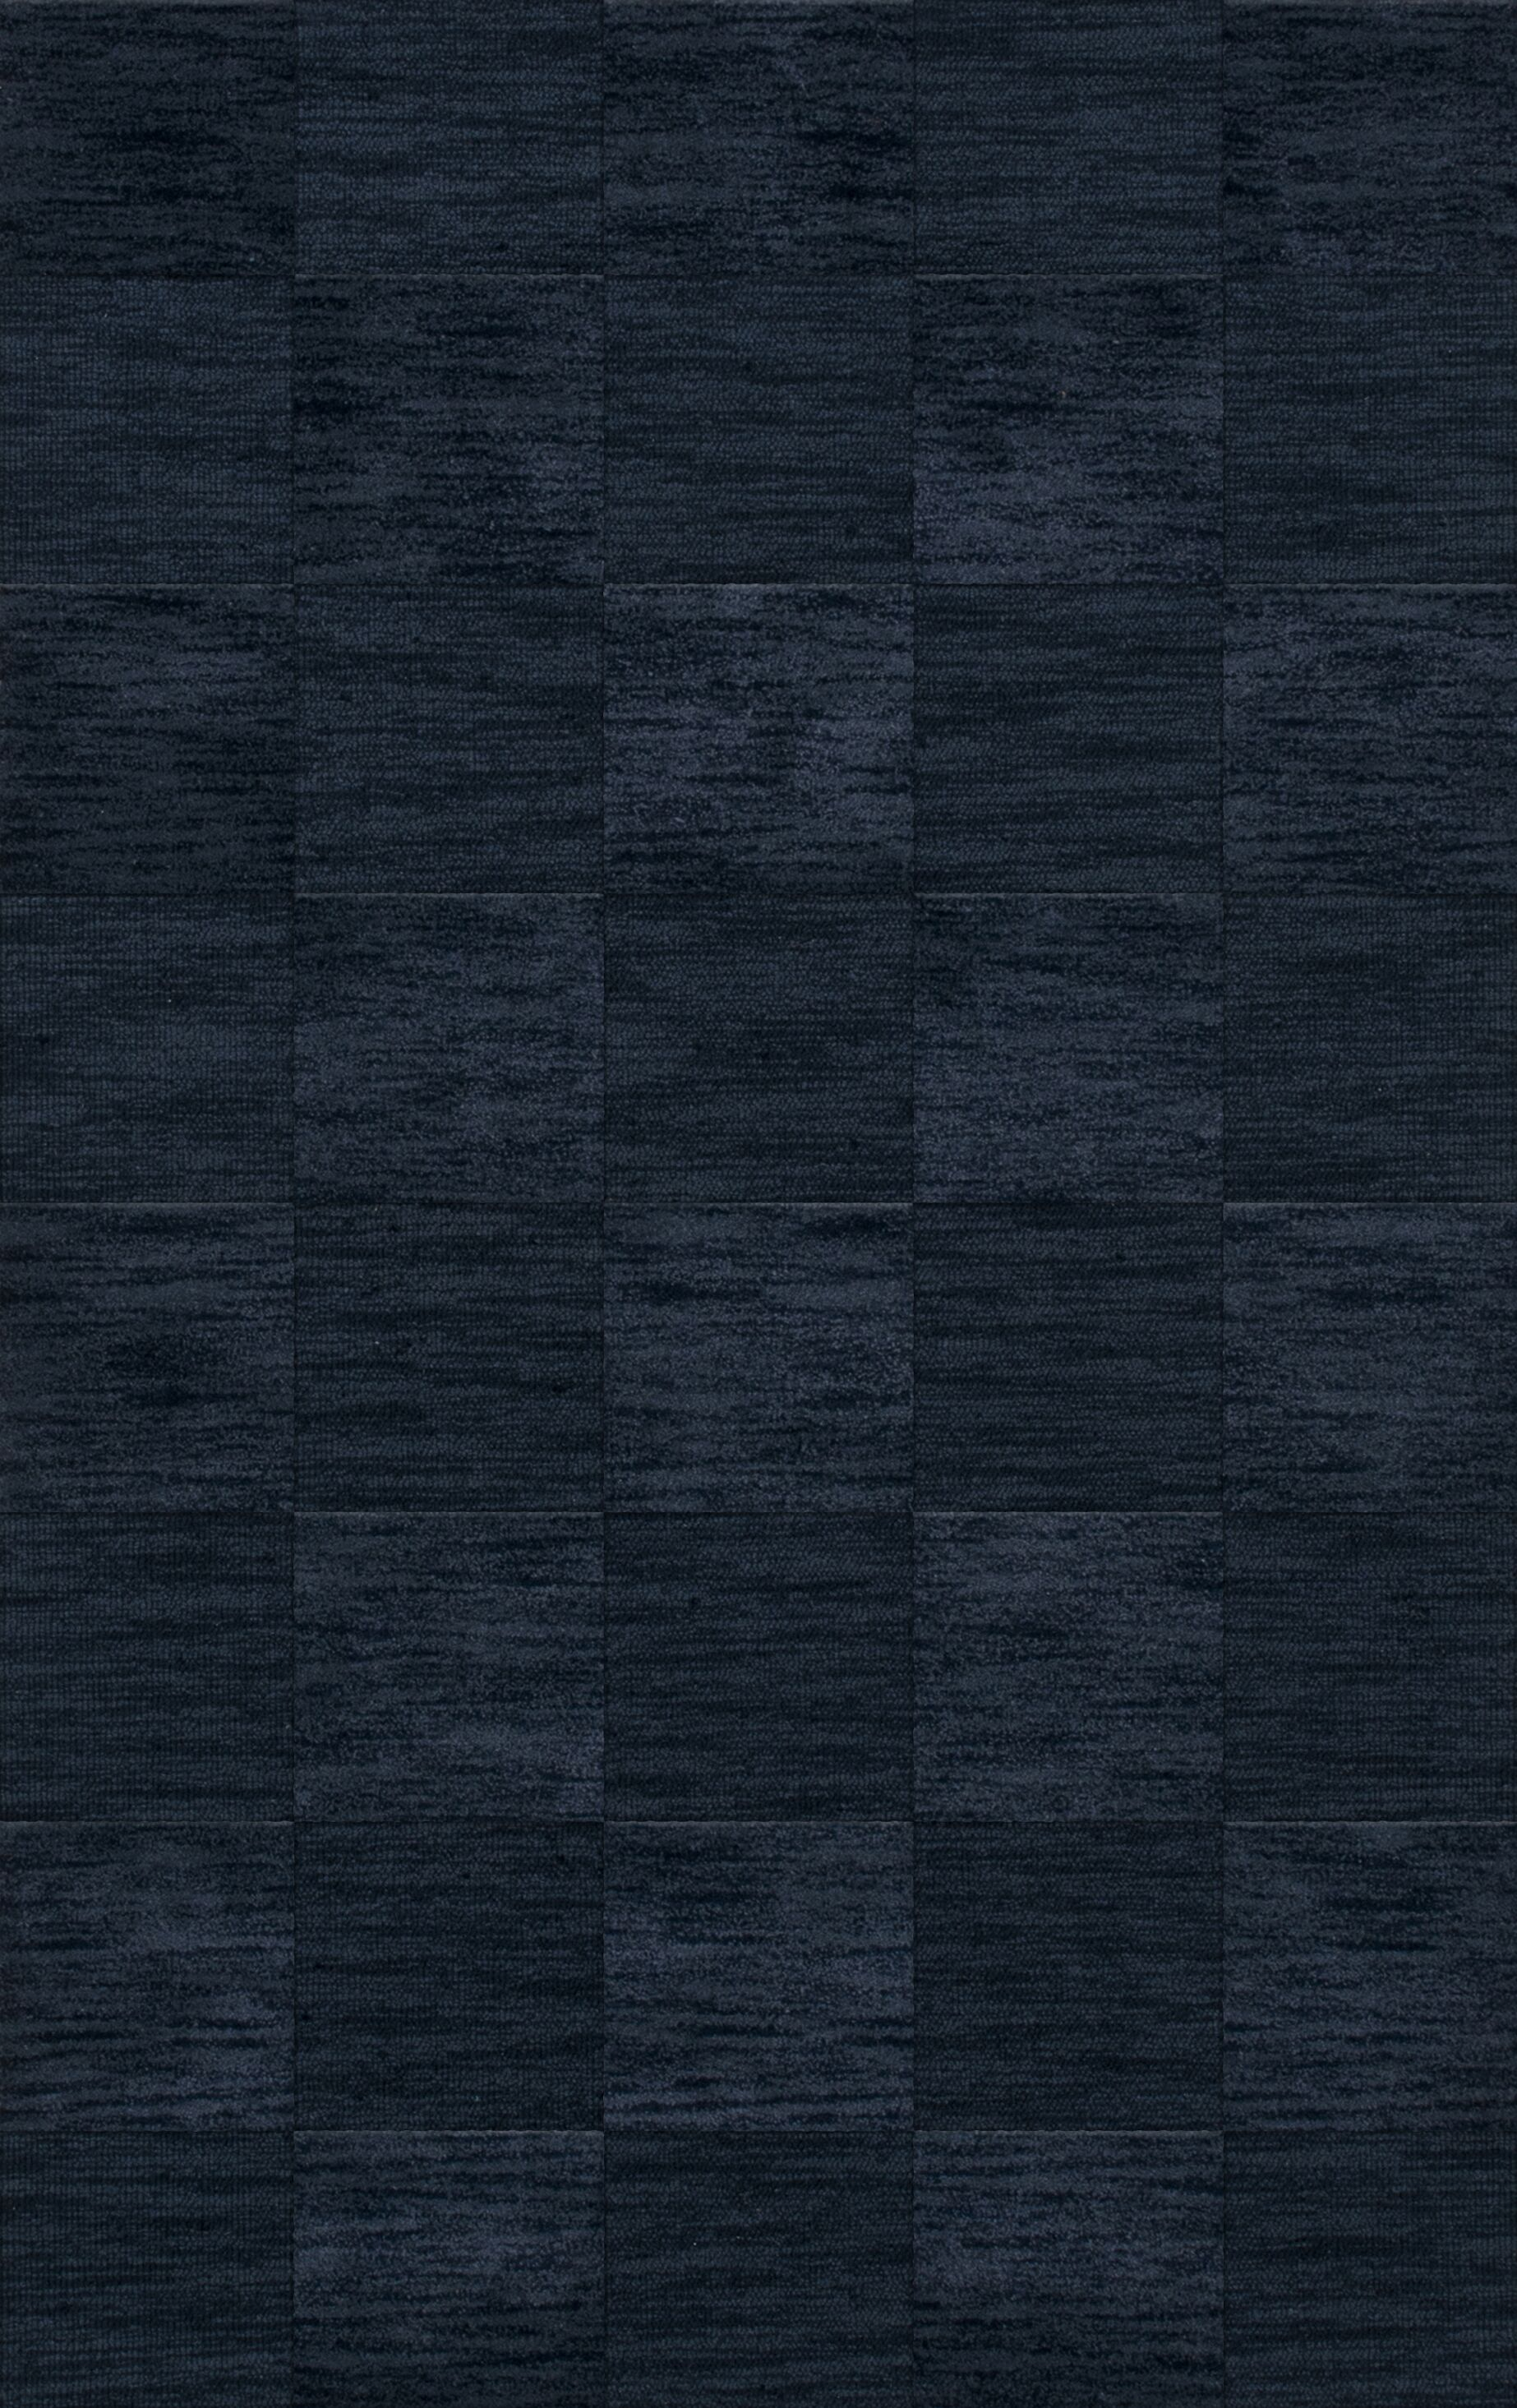 Dover Tufted Wool Navy Area Rug Rug Size: Rectangle 5' x 8'